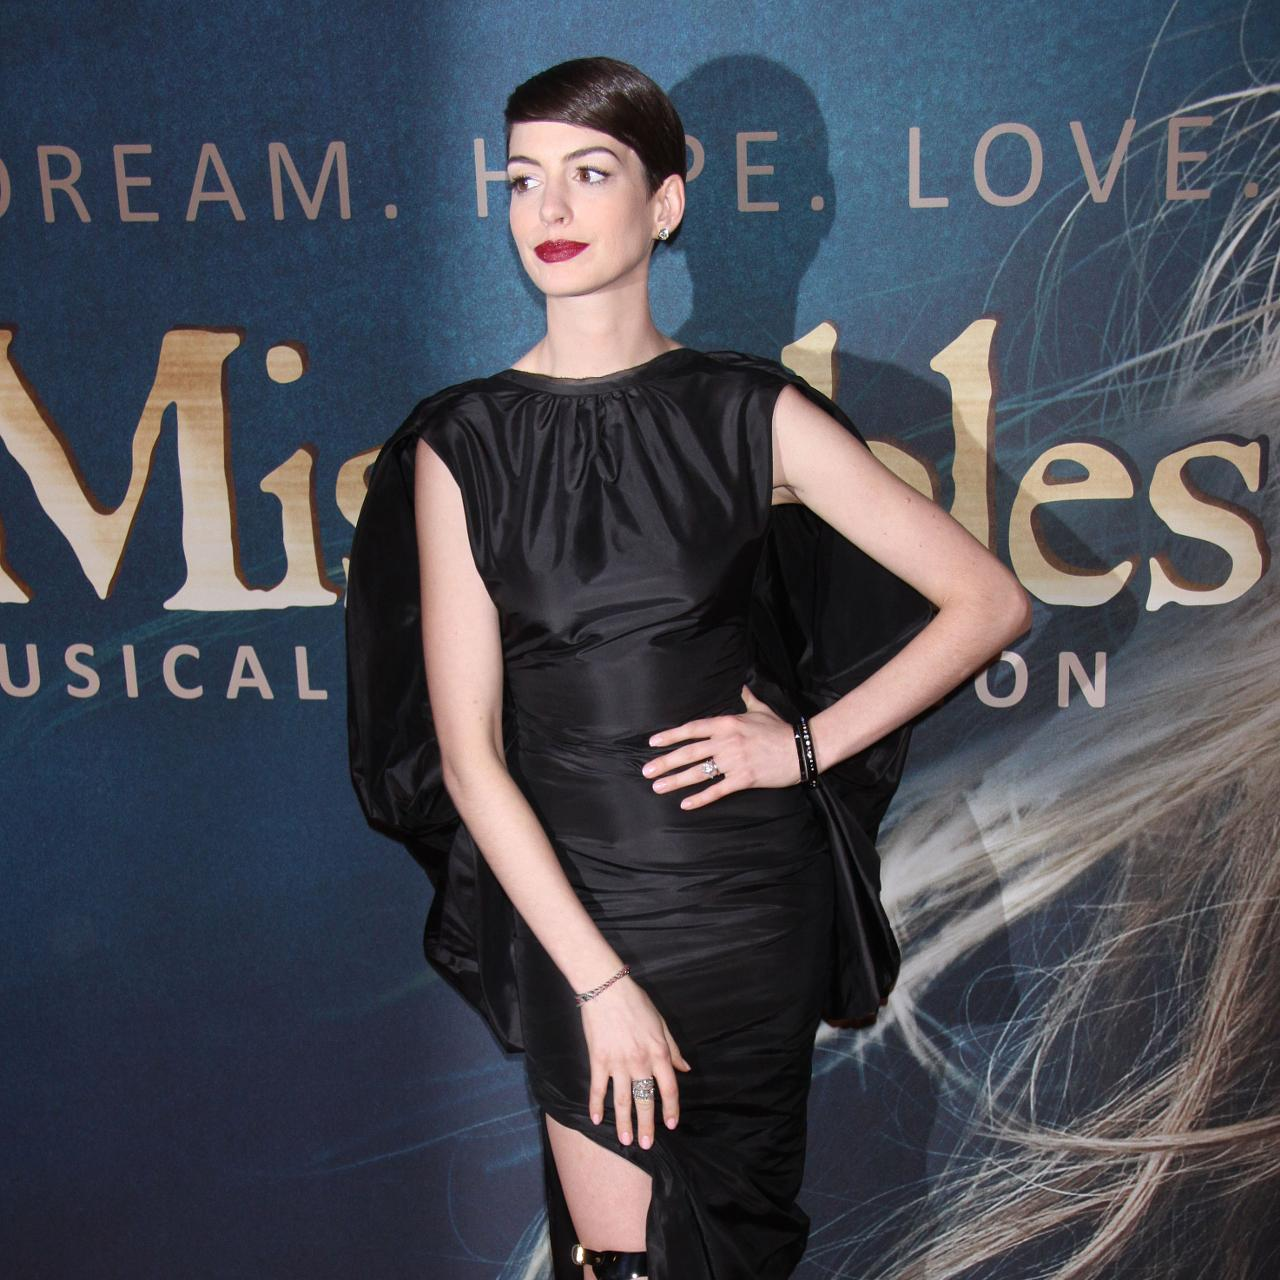 Anne Hathaway Movies On Netflix: Movies: Anne Hathaway At Les Miserables Premiere In NYC